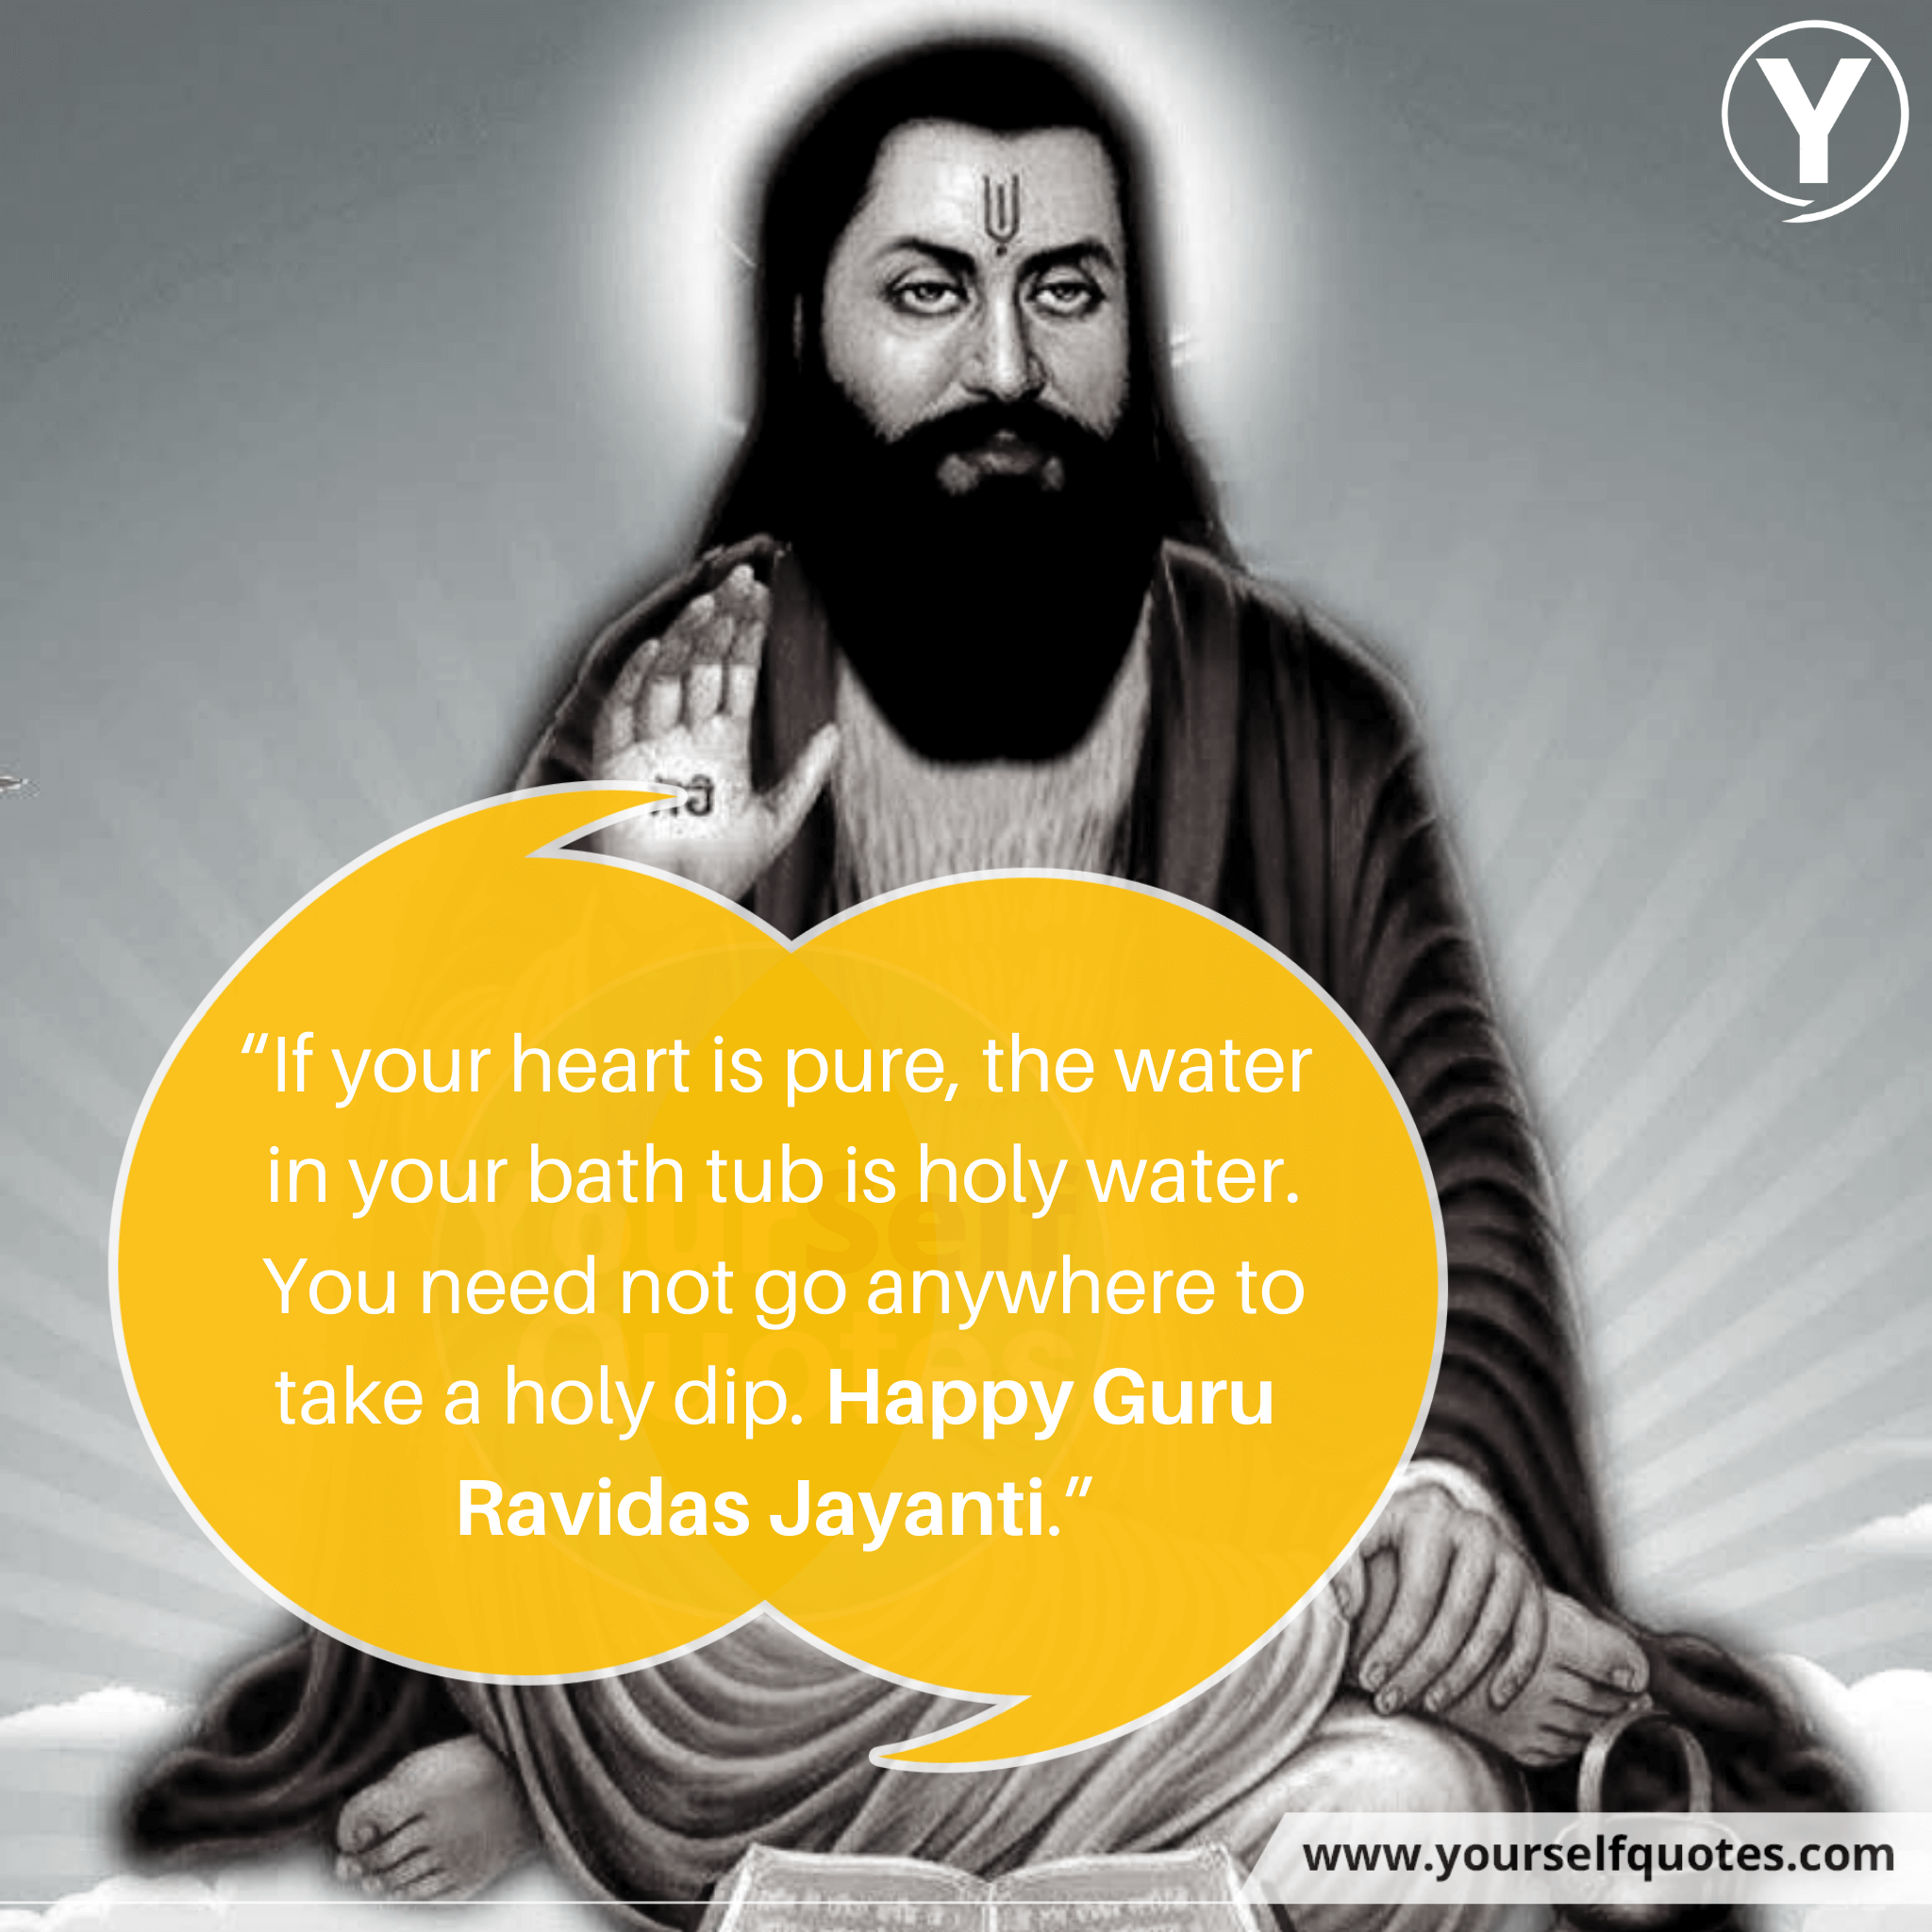 Guru Ravidas Jayanti Wishes Quotes